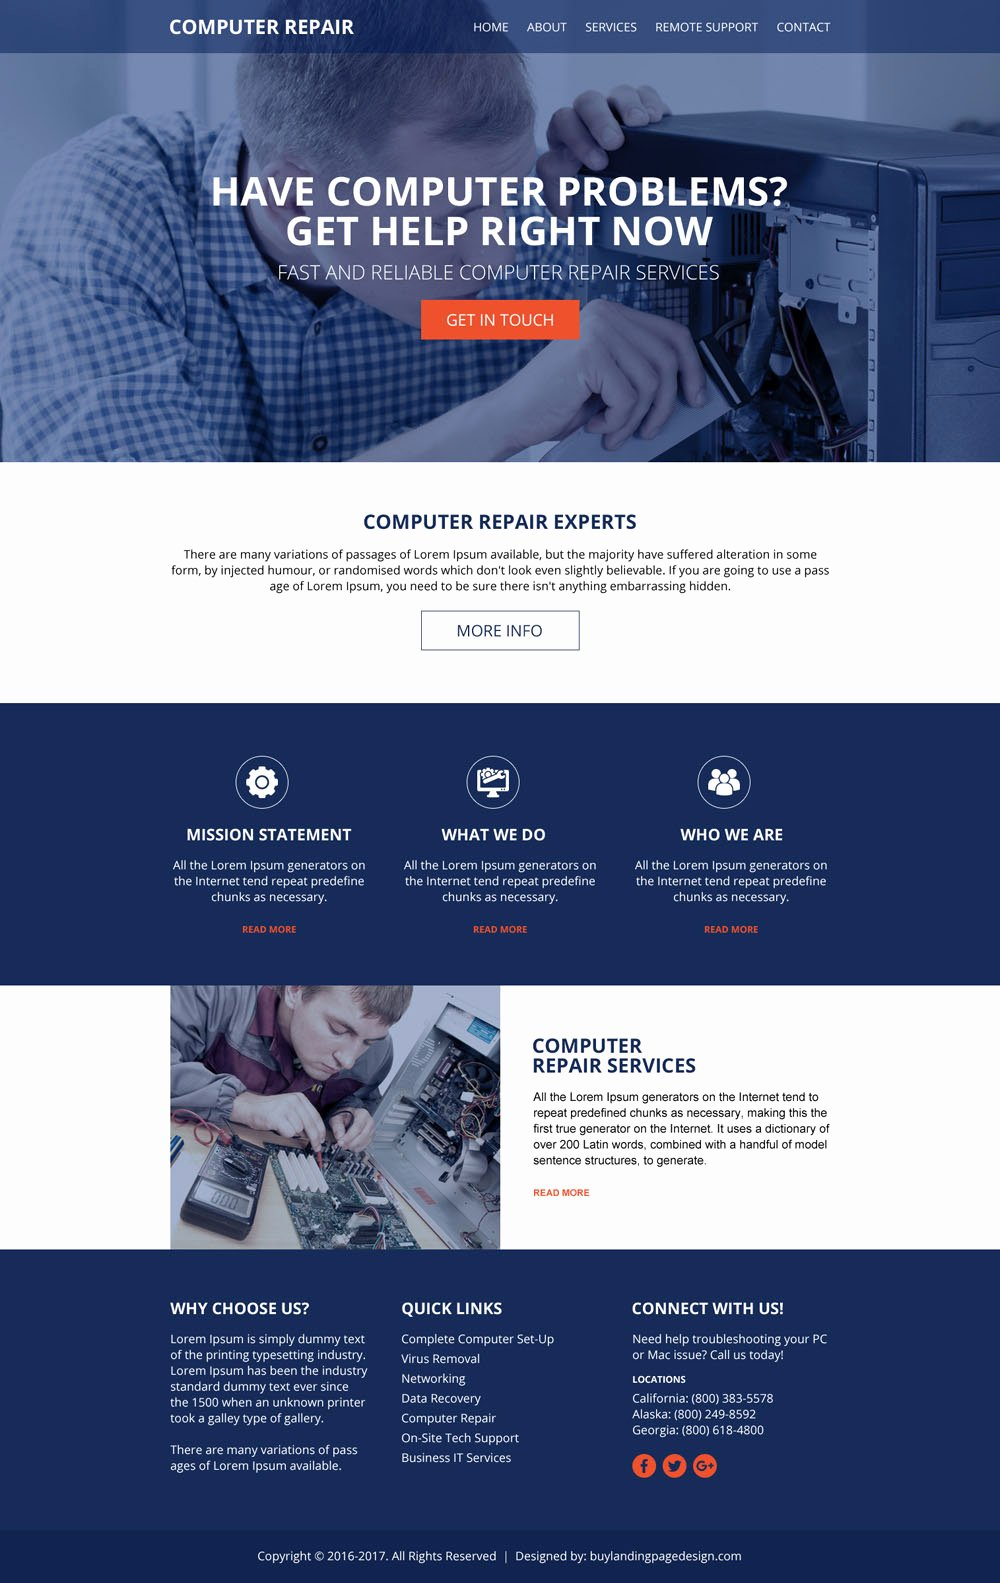 Free Computer Repair Website Template Awesome Puter Repair Services Website 01